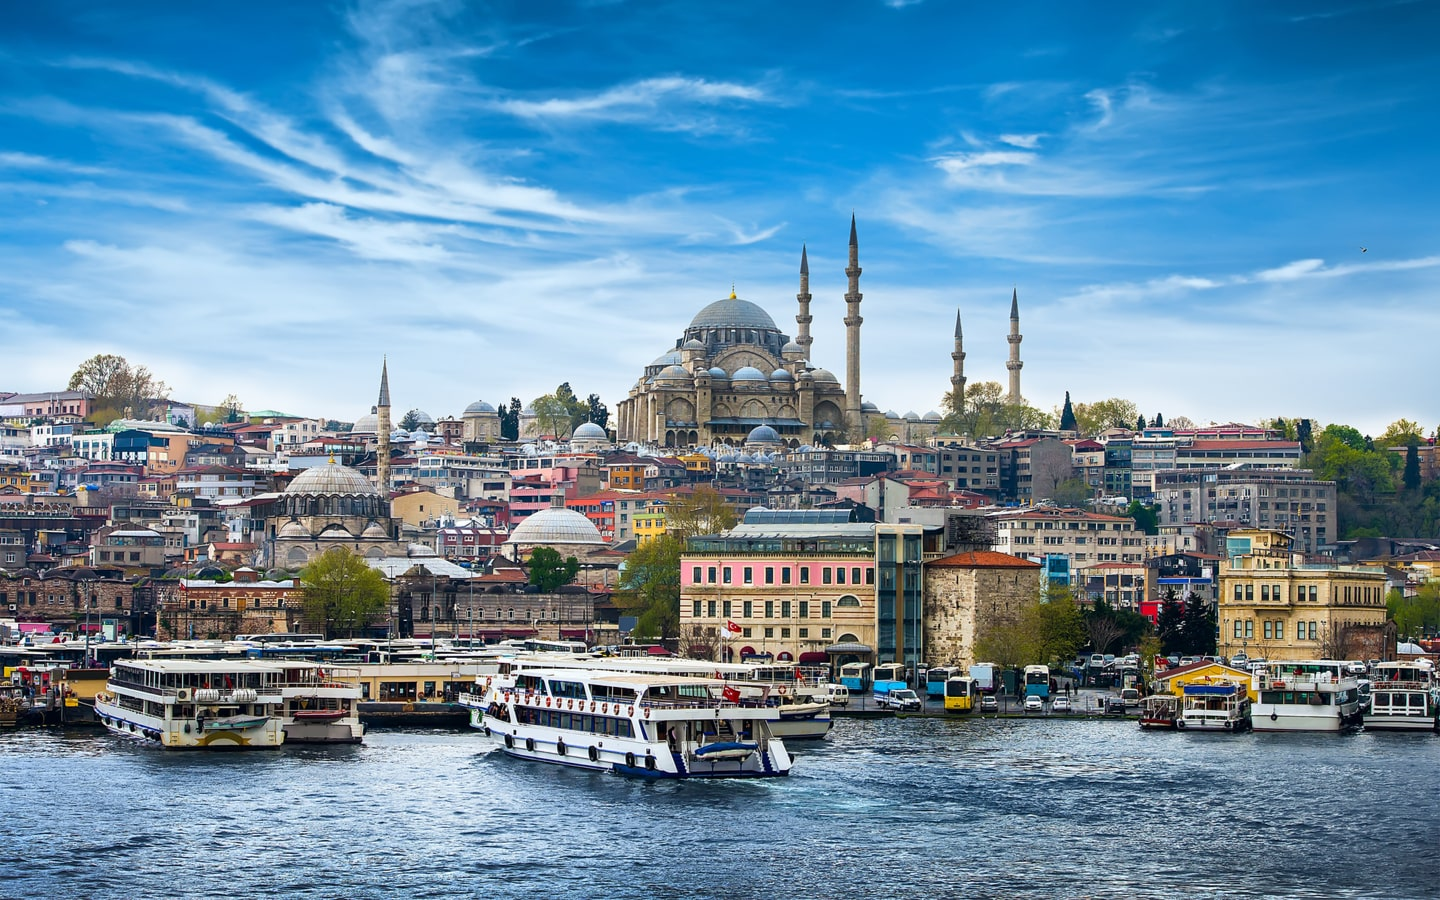 View of Bosphorus river and mosque in Istanbul